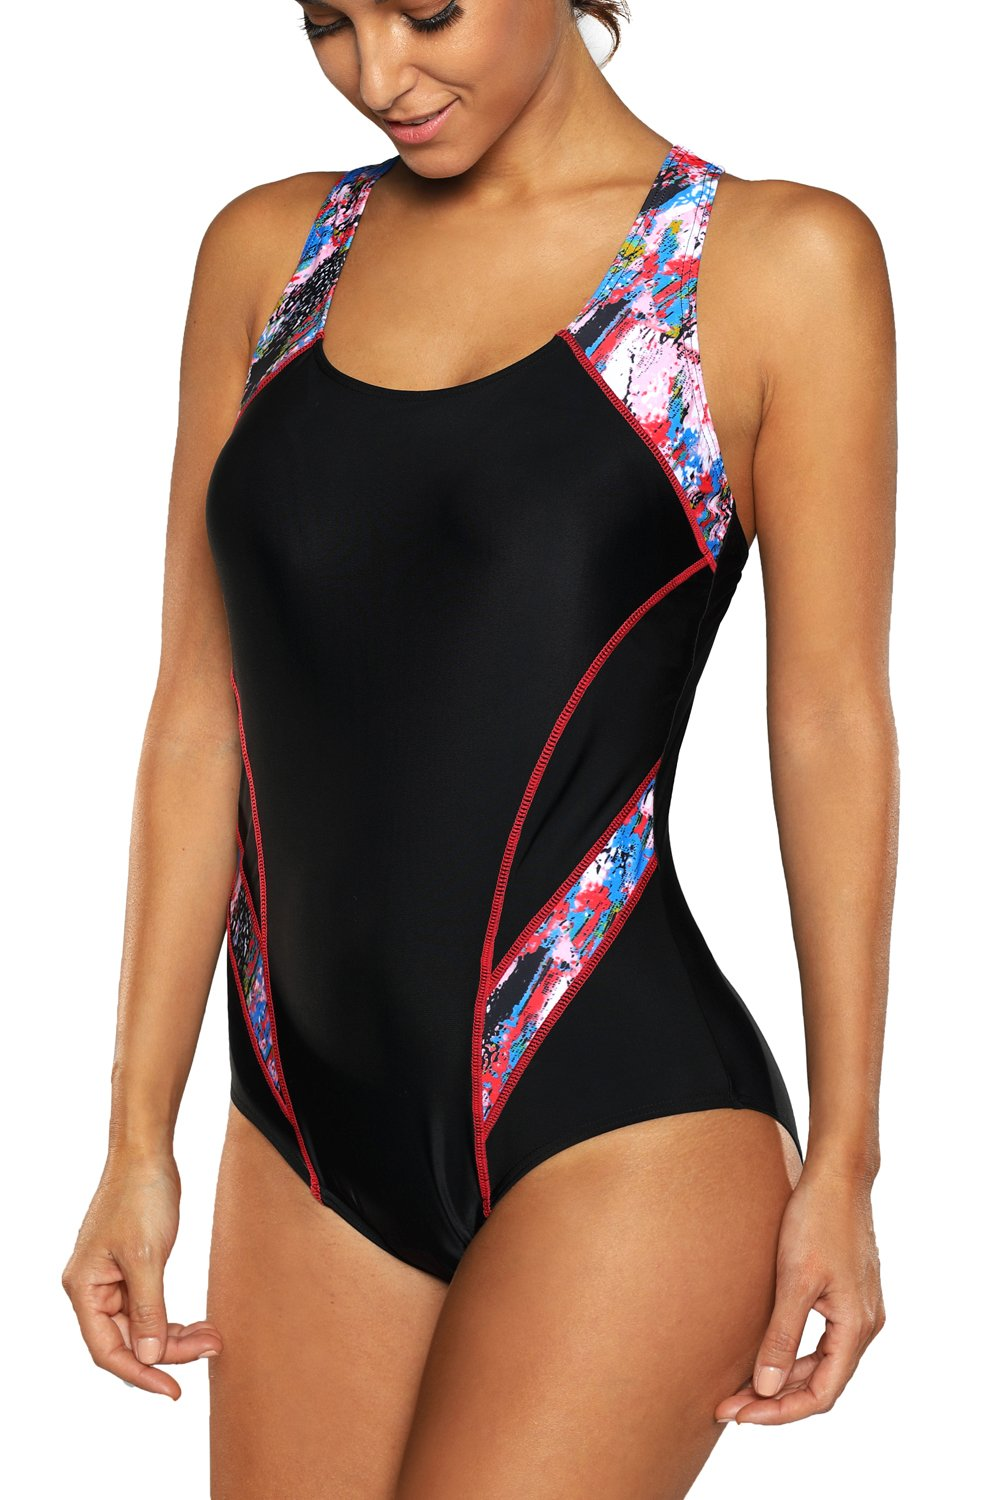 beautyin Womens One Piece Athletic Racerback Swimsuit Slimming Bathing Suit